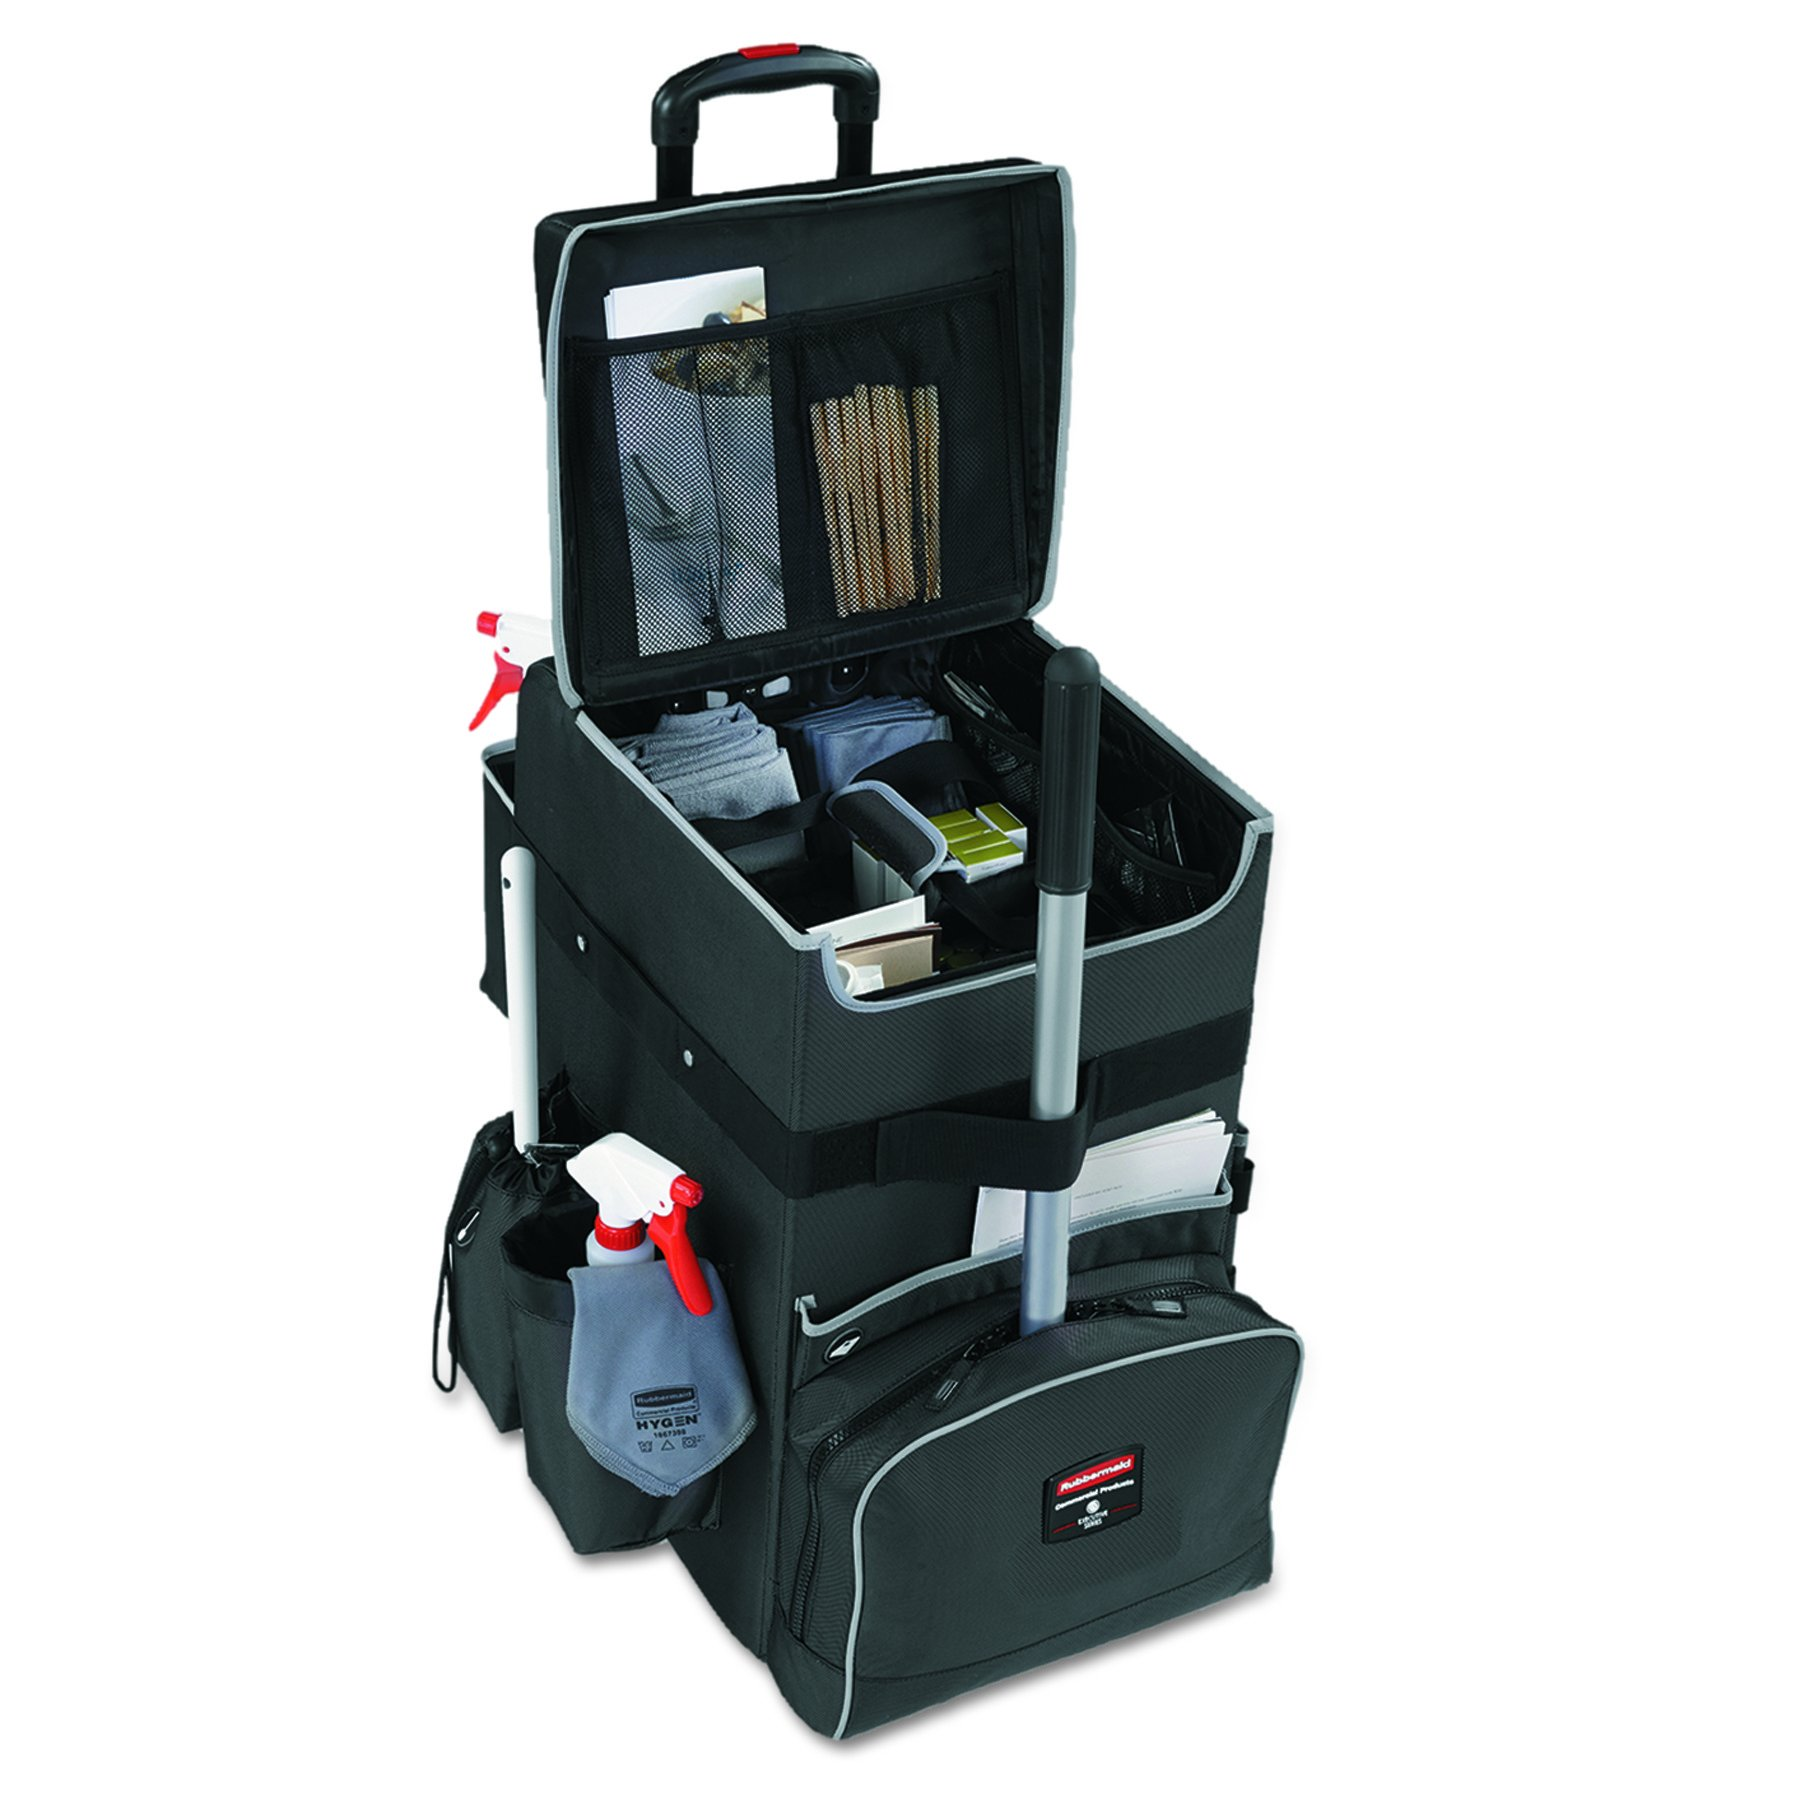 Rubbermaid Commercial Products Executive Janitorial Housekeeping Quick Cart, Large, 1902465